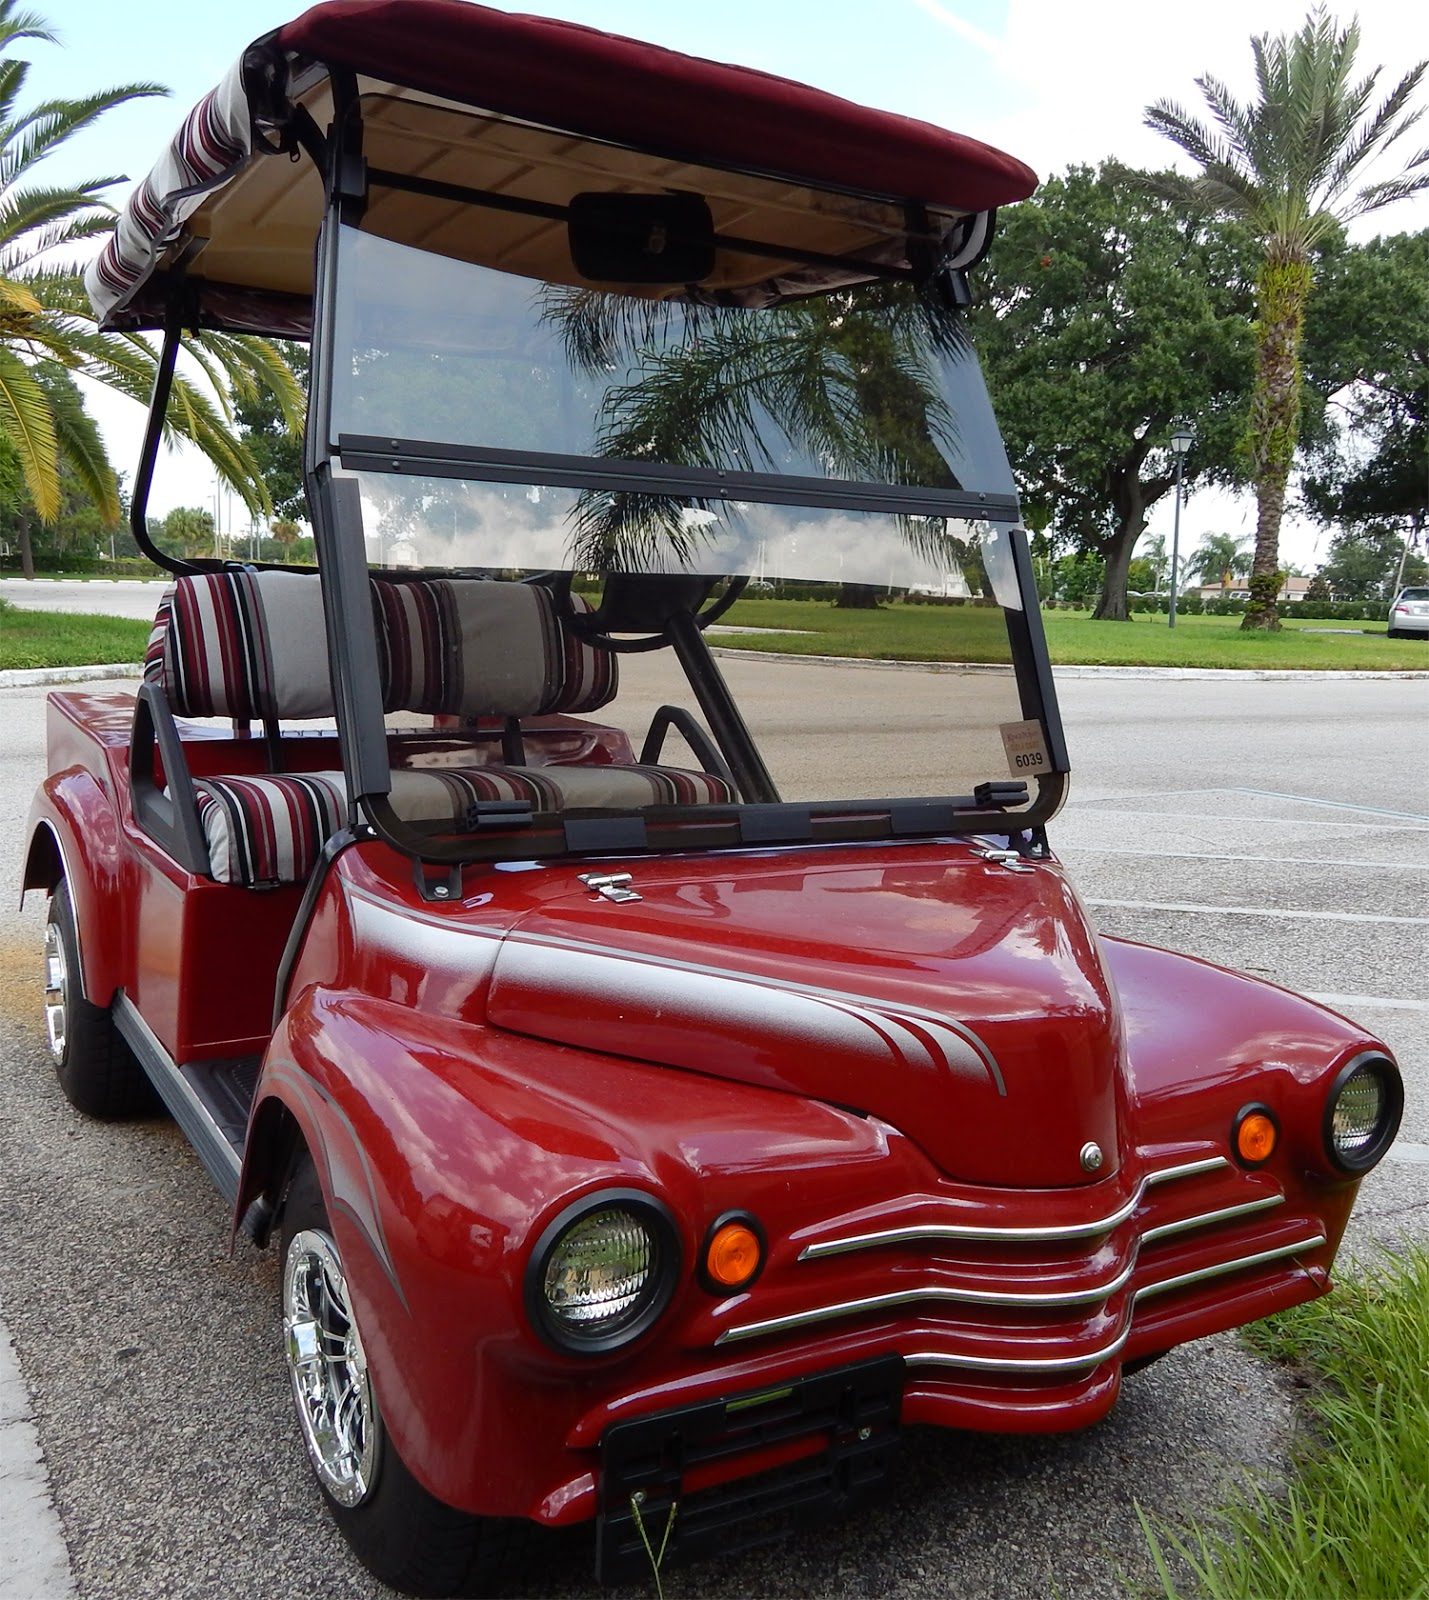 Good Looking Golf Carts Html. Good. Golf Cart HD Images on